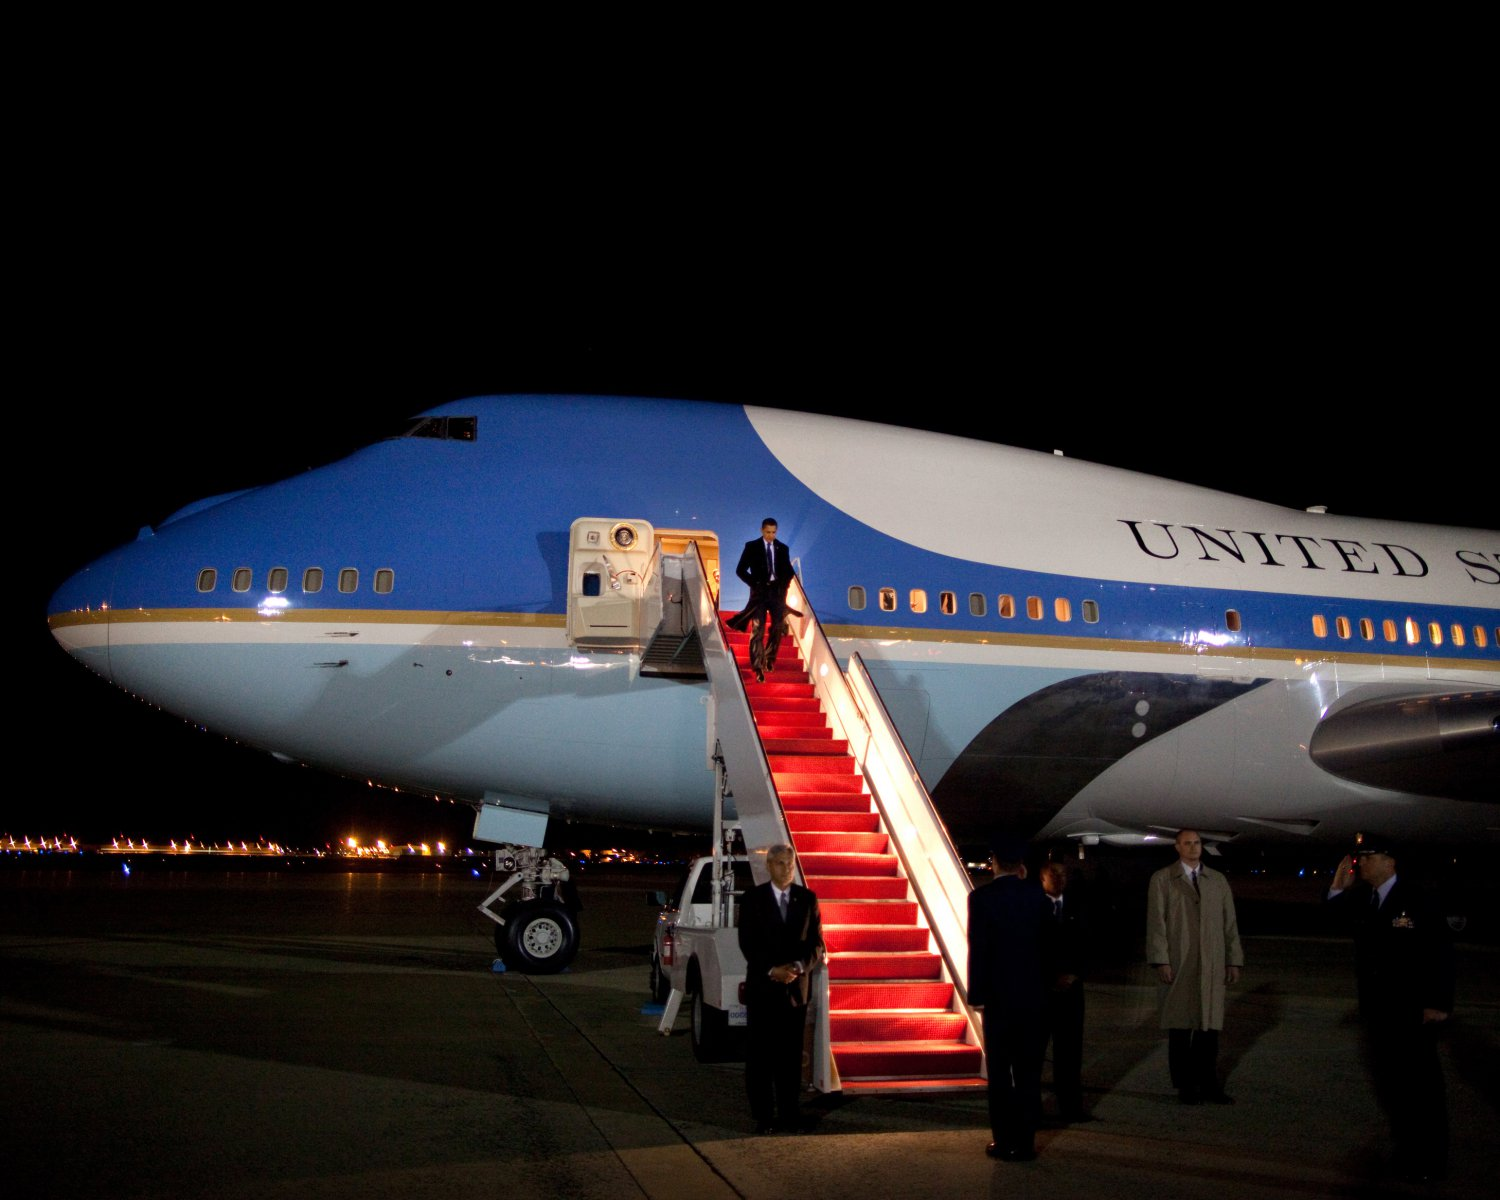 PRESIDENT BARACK OBAMA DEPARTS AIR FORCE ONE AFTER IRAQ TRIP 8X10 PHOTO (EP-899)